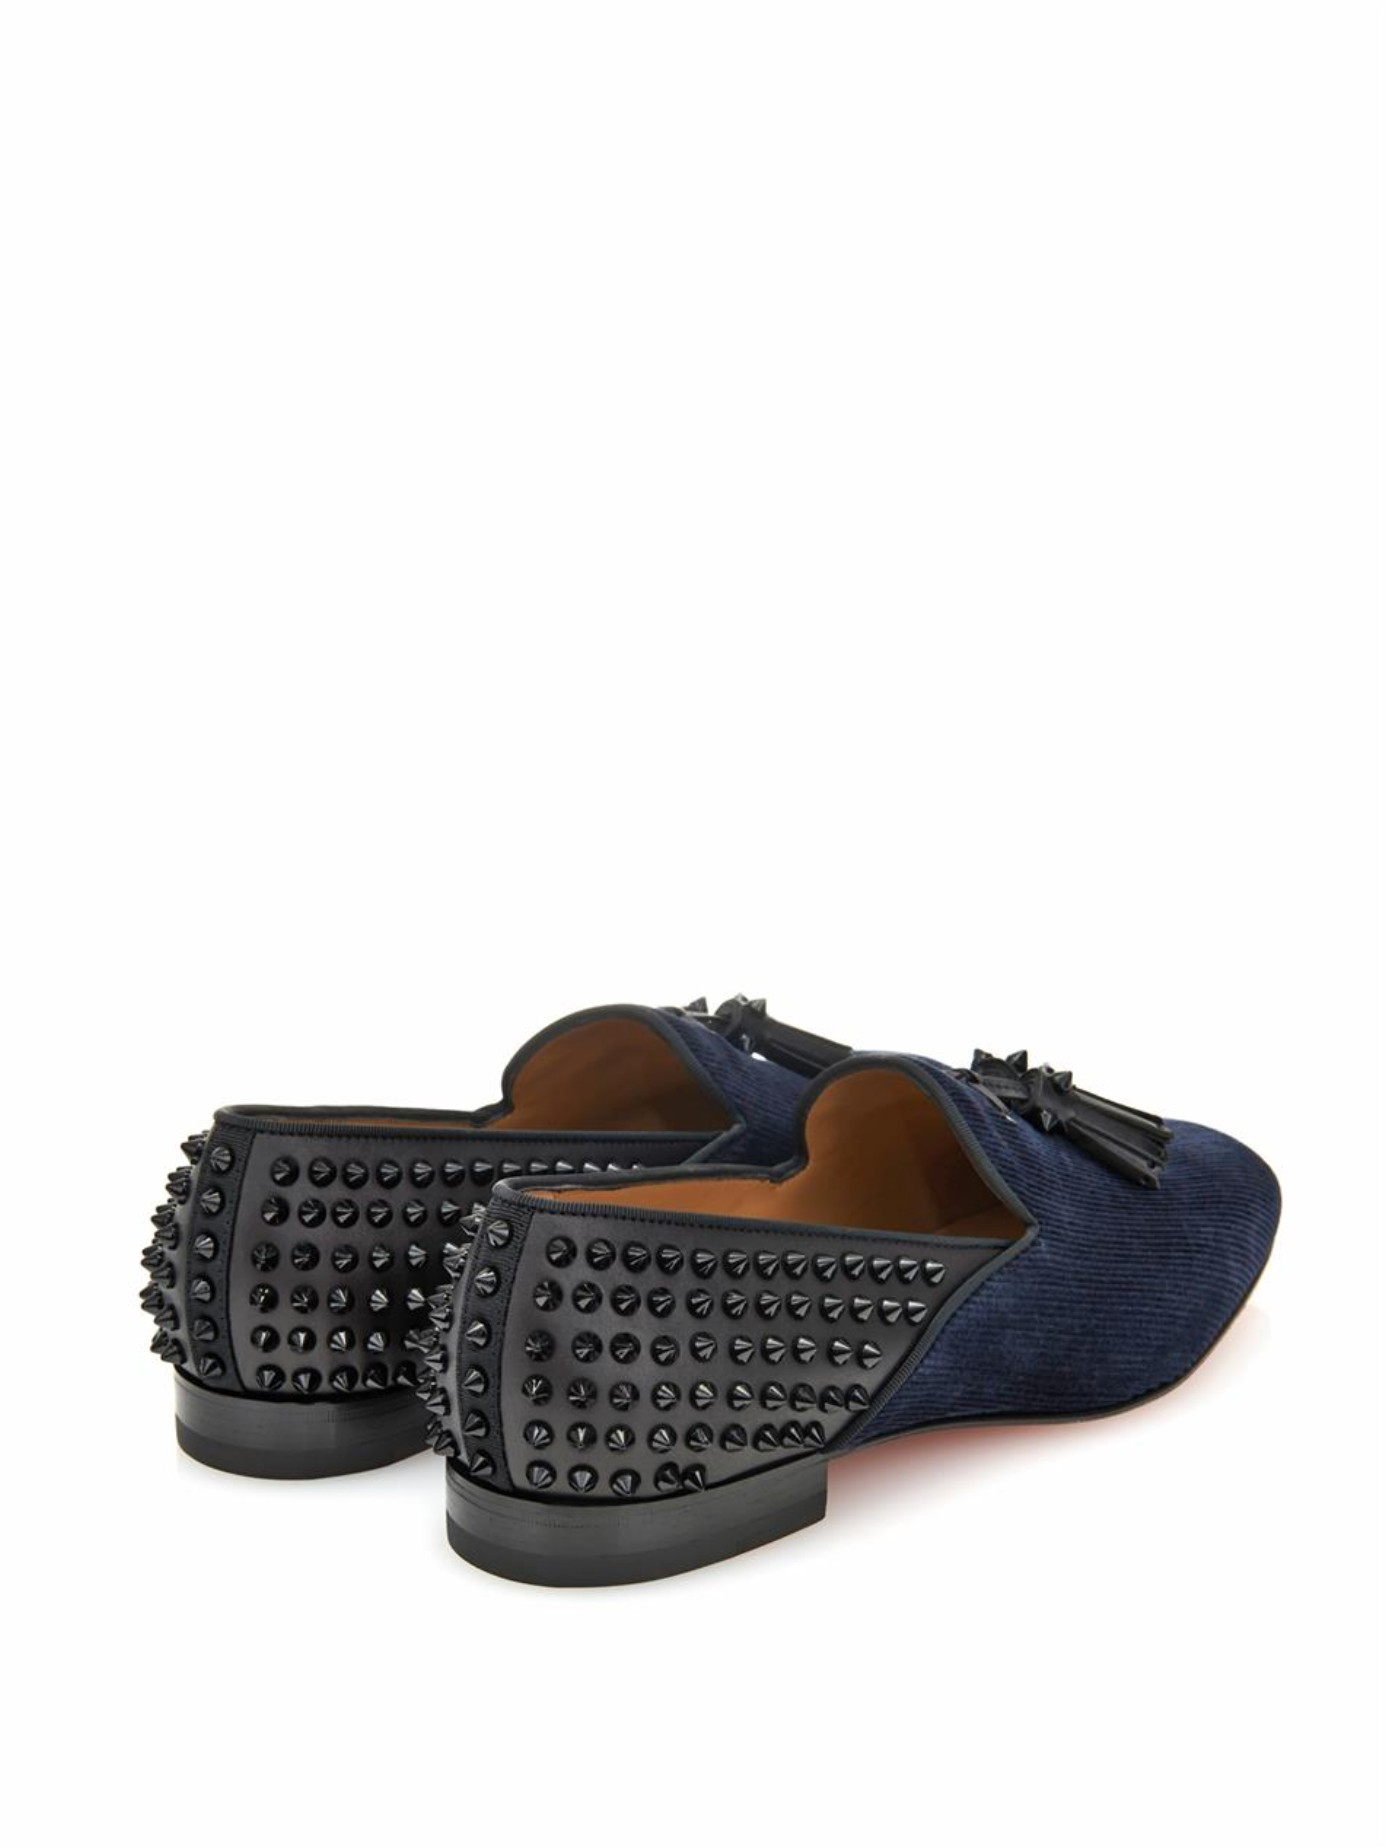 louis vuitton replica mens shoes - Christian louboutin Tassilo Studded Loafers in Blue for Men (NAVY ...